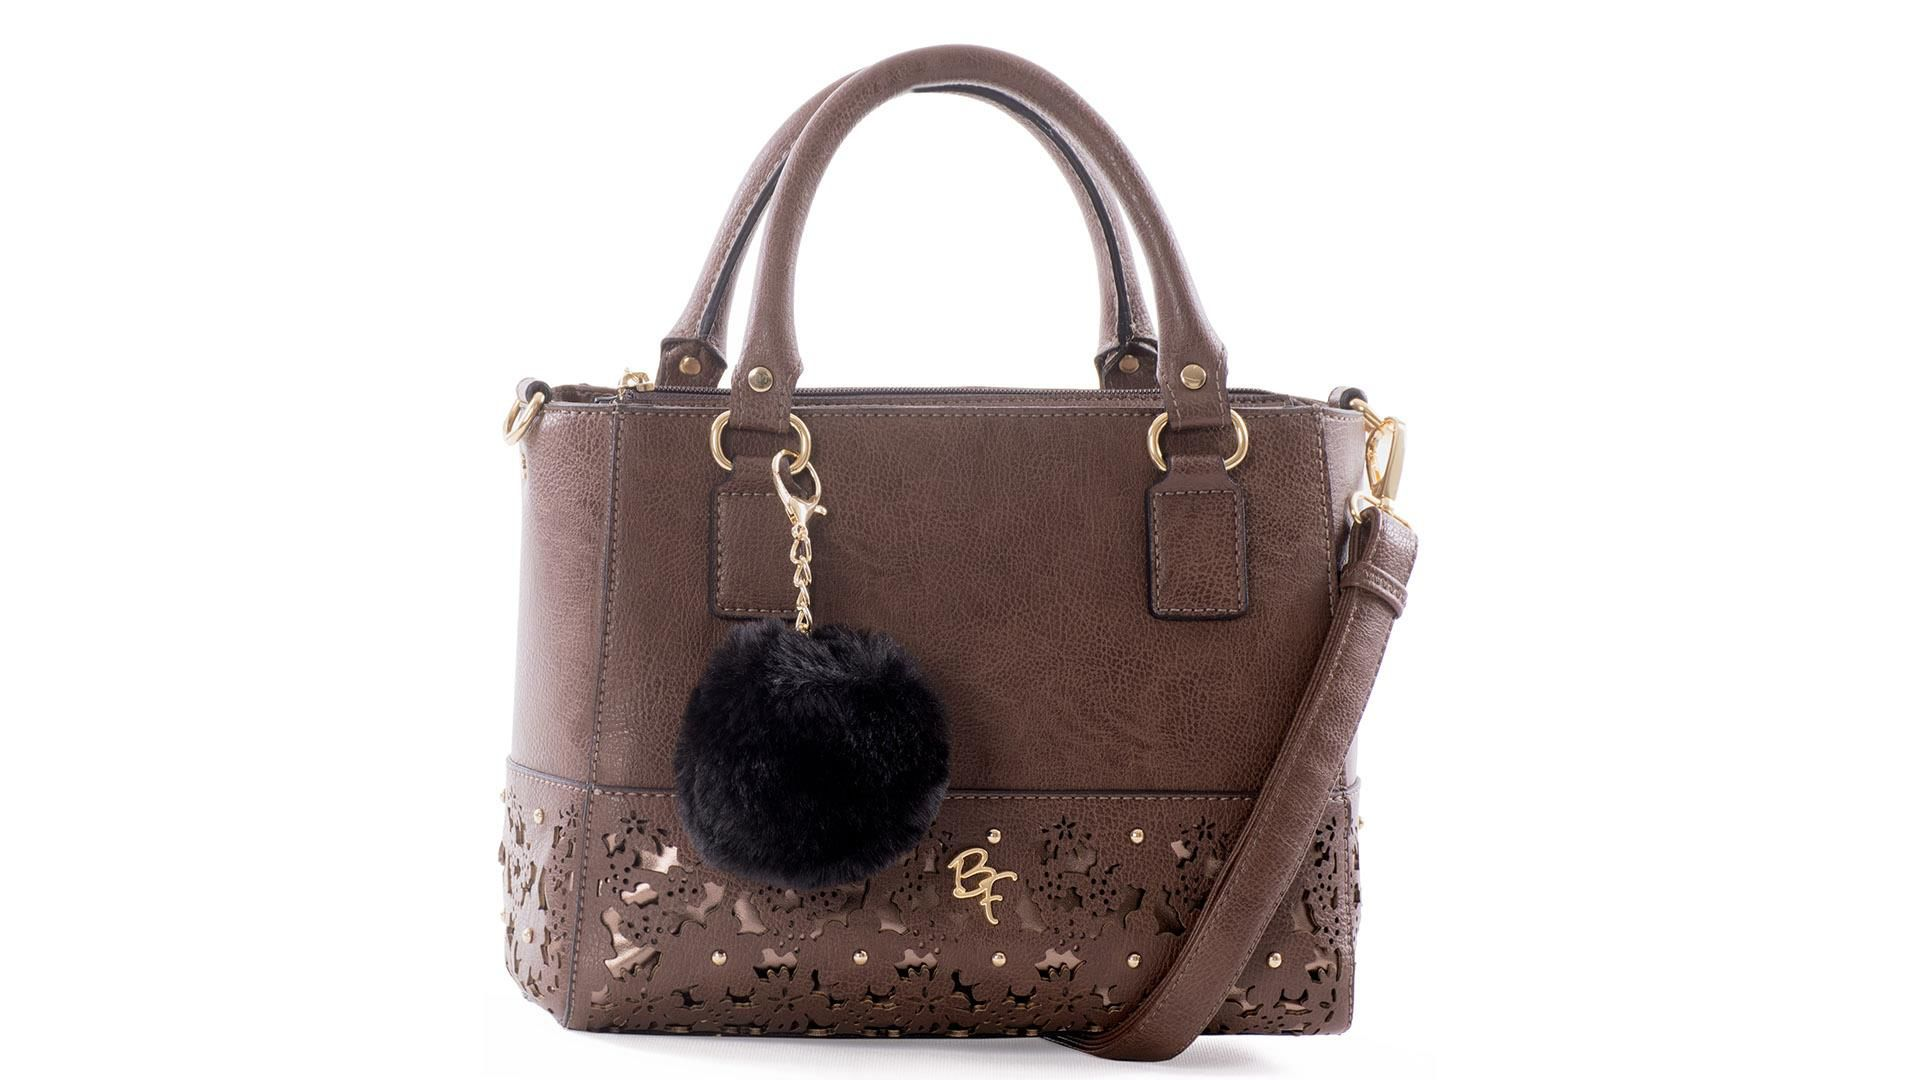 BOLSA BE FOREVER 33.92132A1 MOCCA RAFITTHY